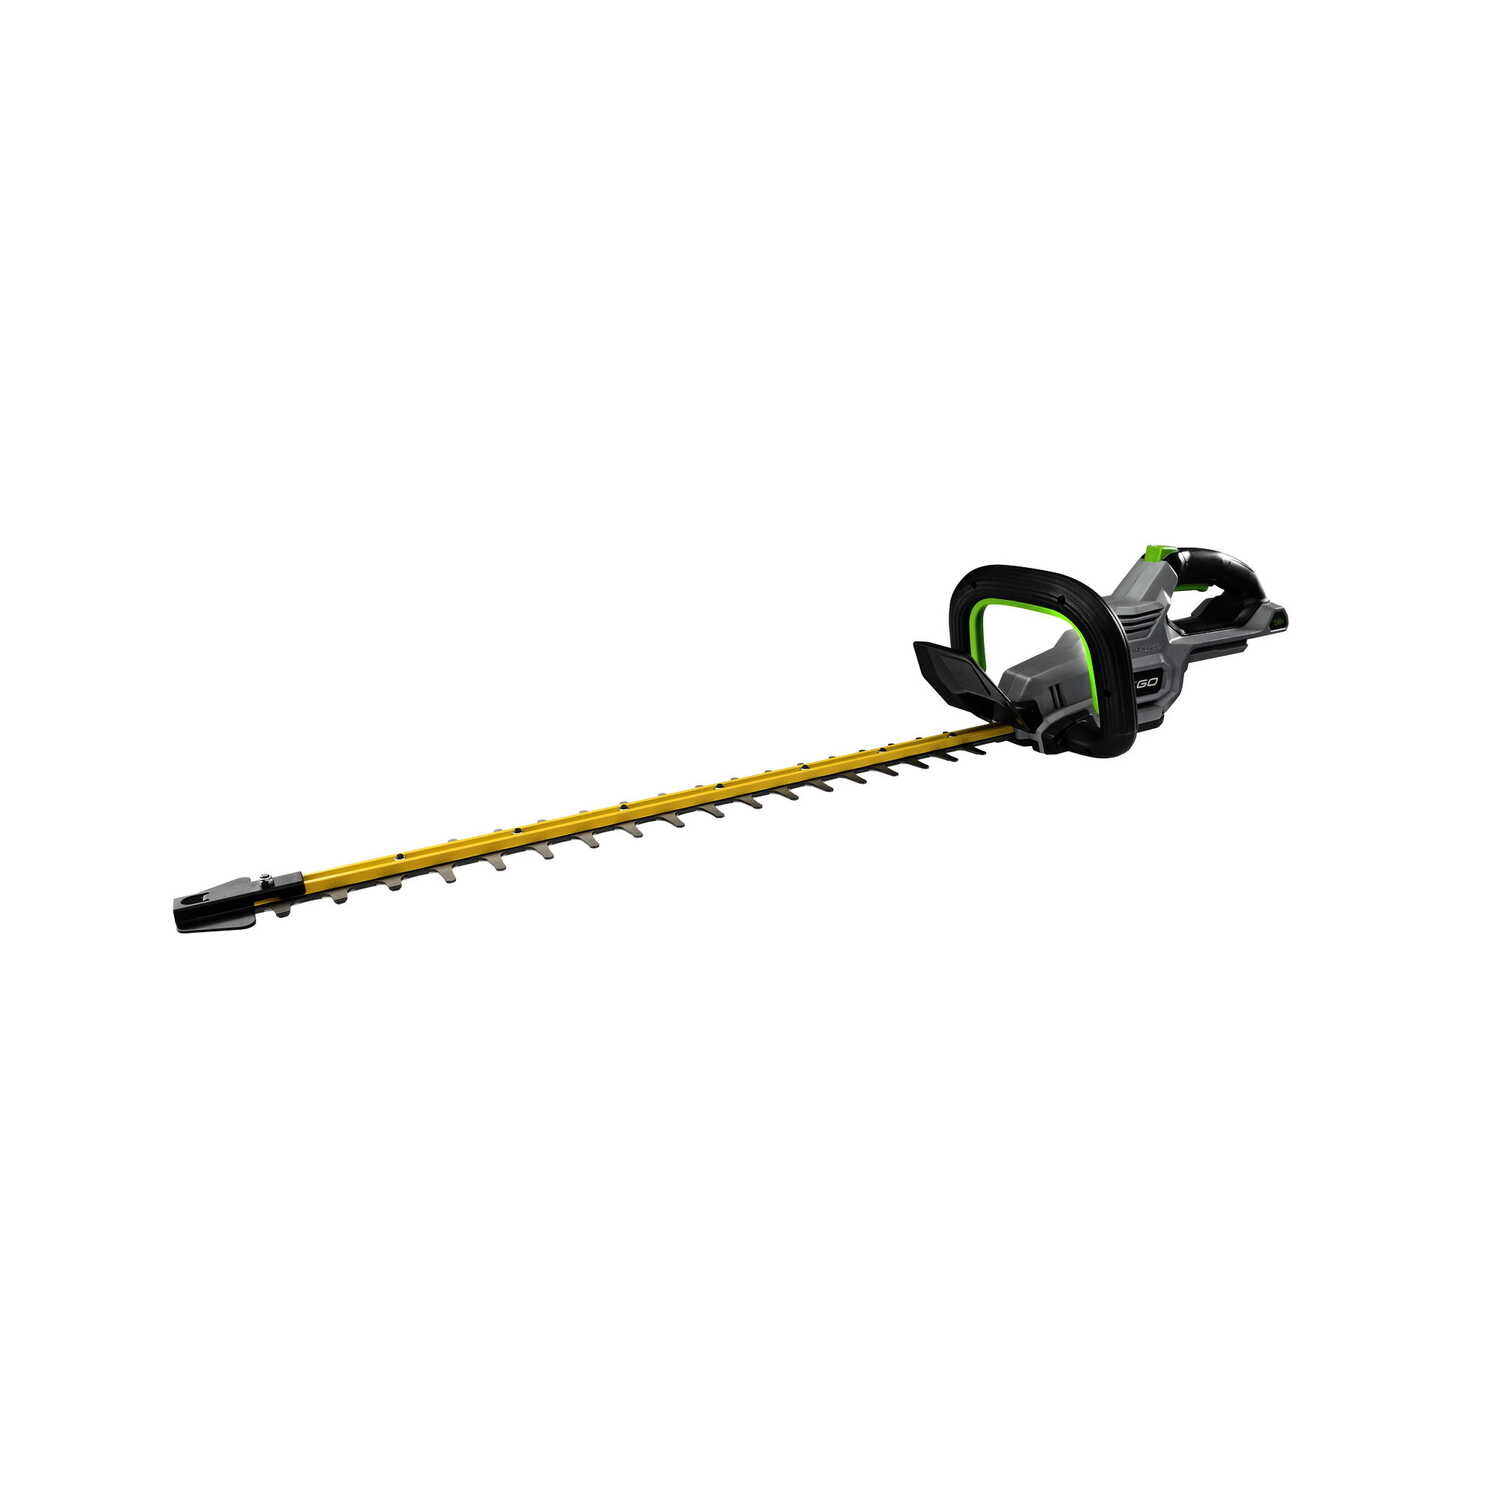 EGO  Power Plus  24 in. 56 volt Battery  Hedge Trimmer